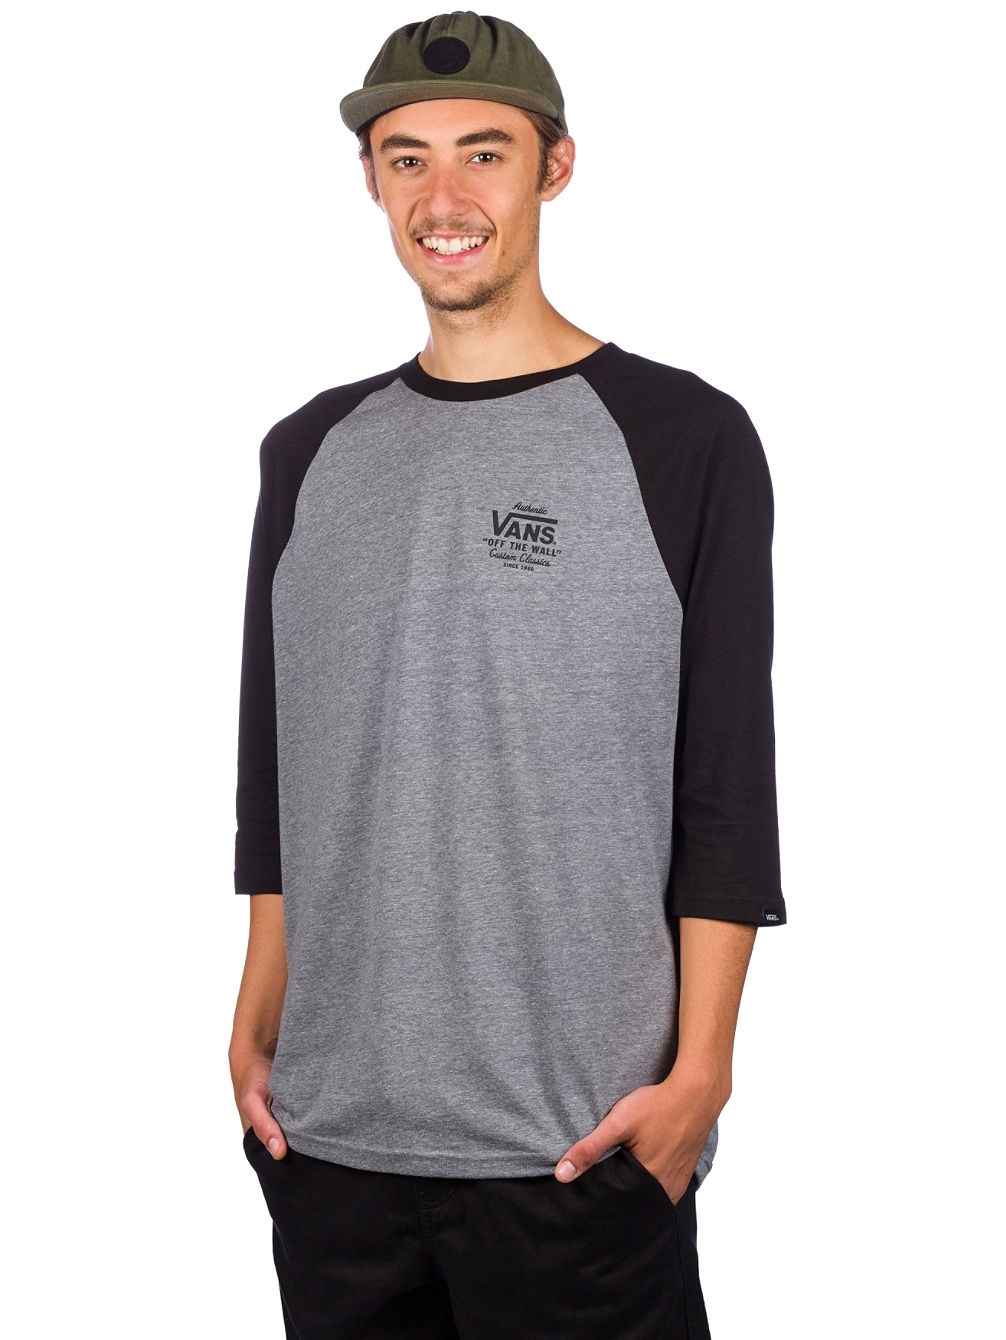 6ce6b9b5f6 Buy Vans Holder St Raglan Long Sleeve T-Shirt online at Blue Tomato